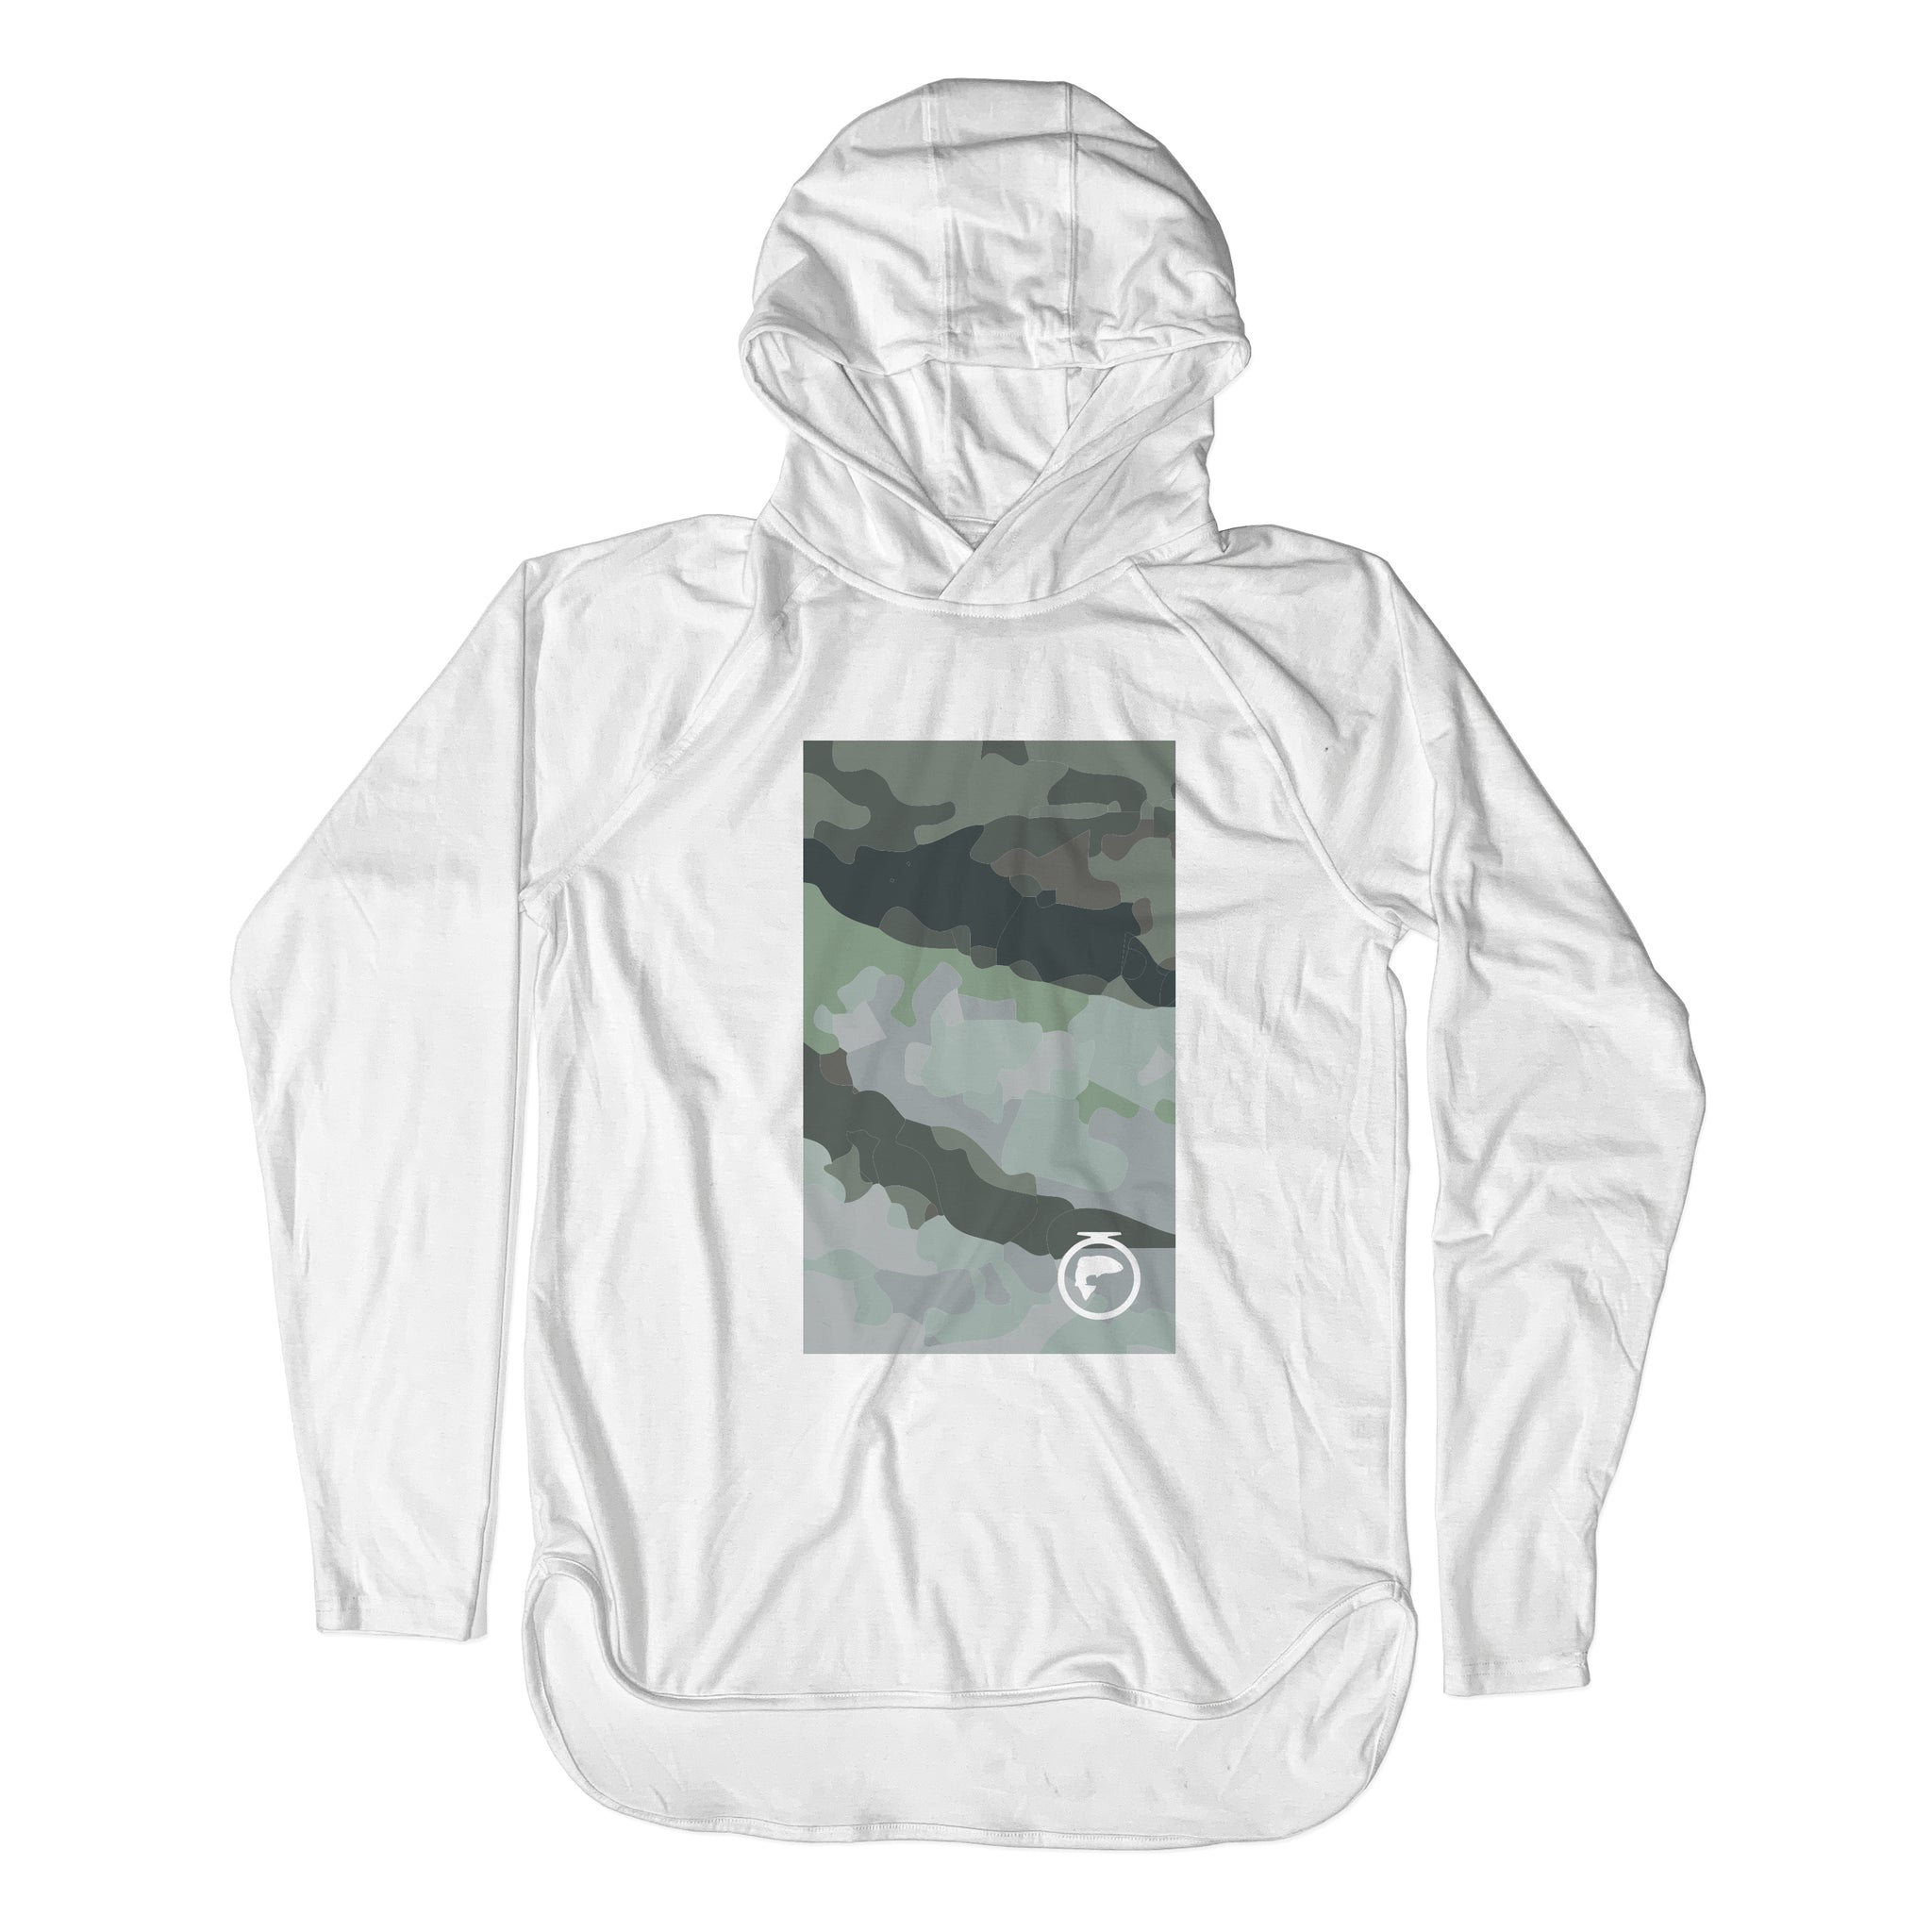 Xtreme Performance Pullover Sun Hoodie - Rooster Fish Skin Art - Unisex